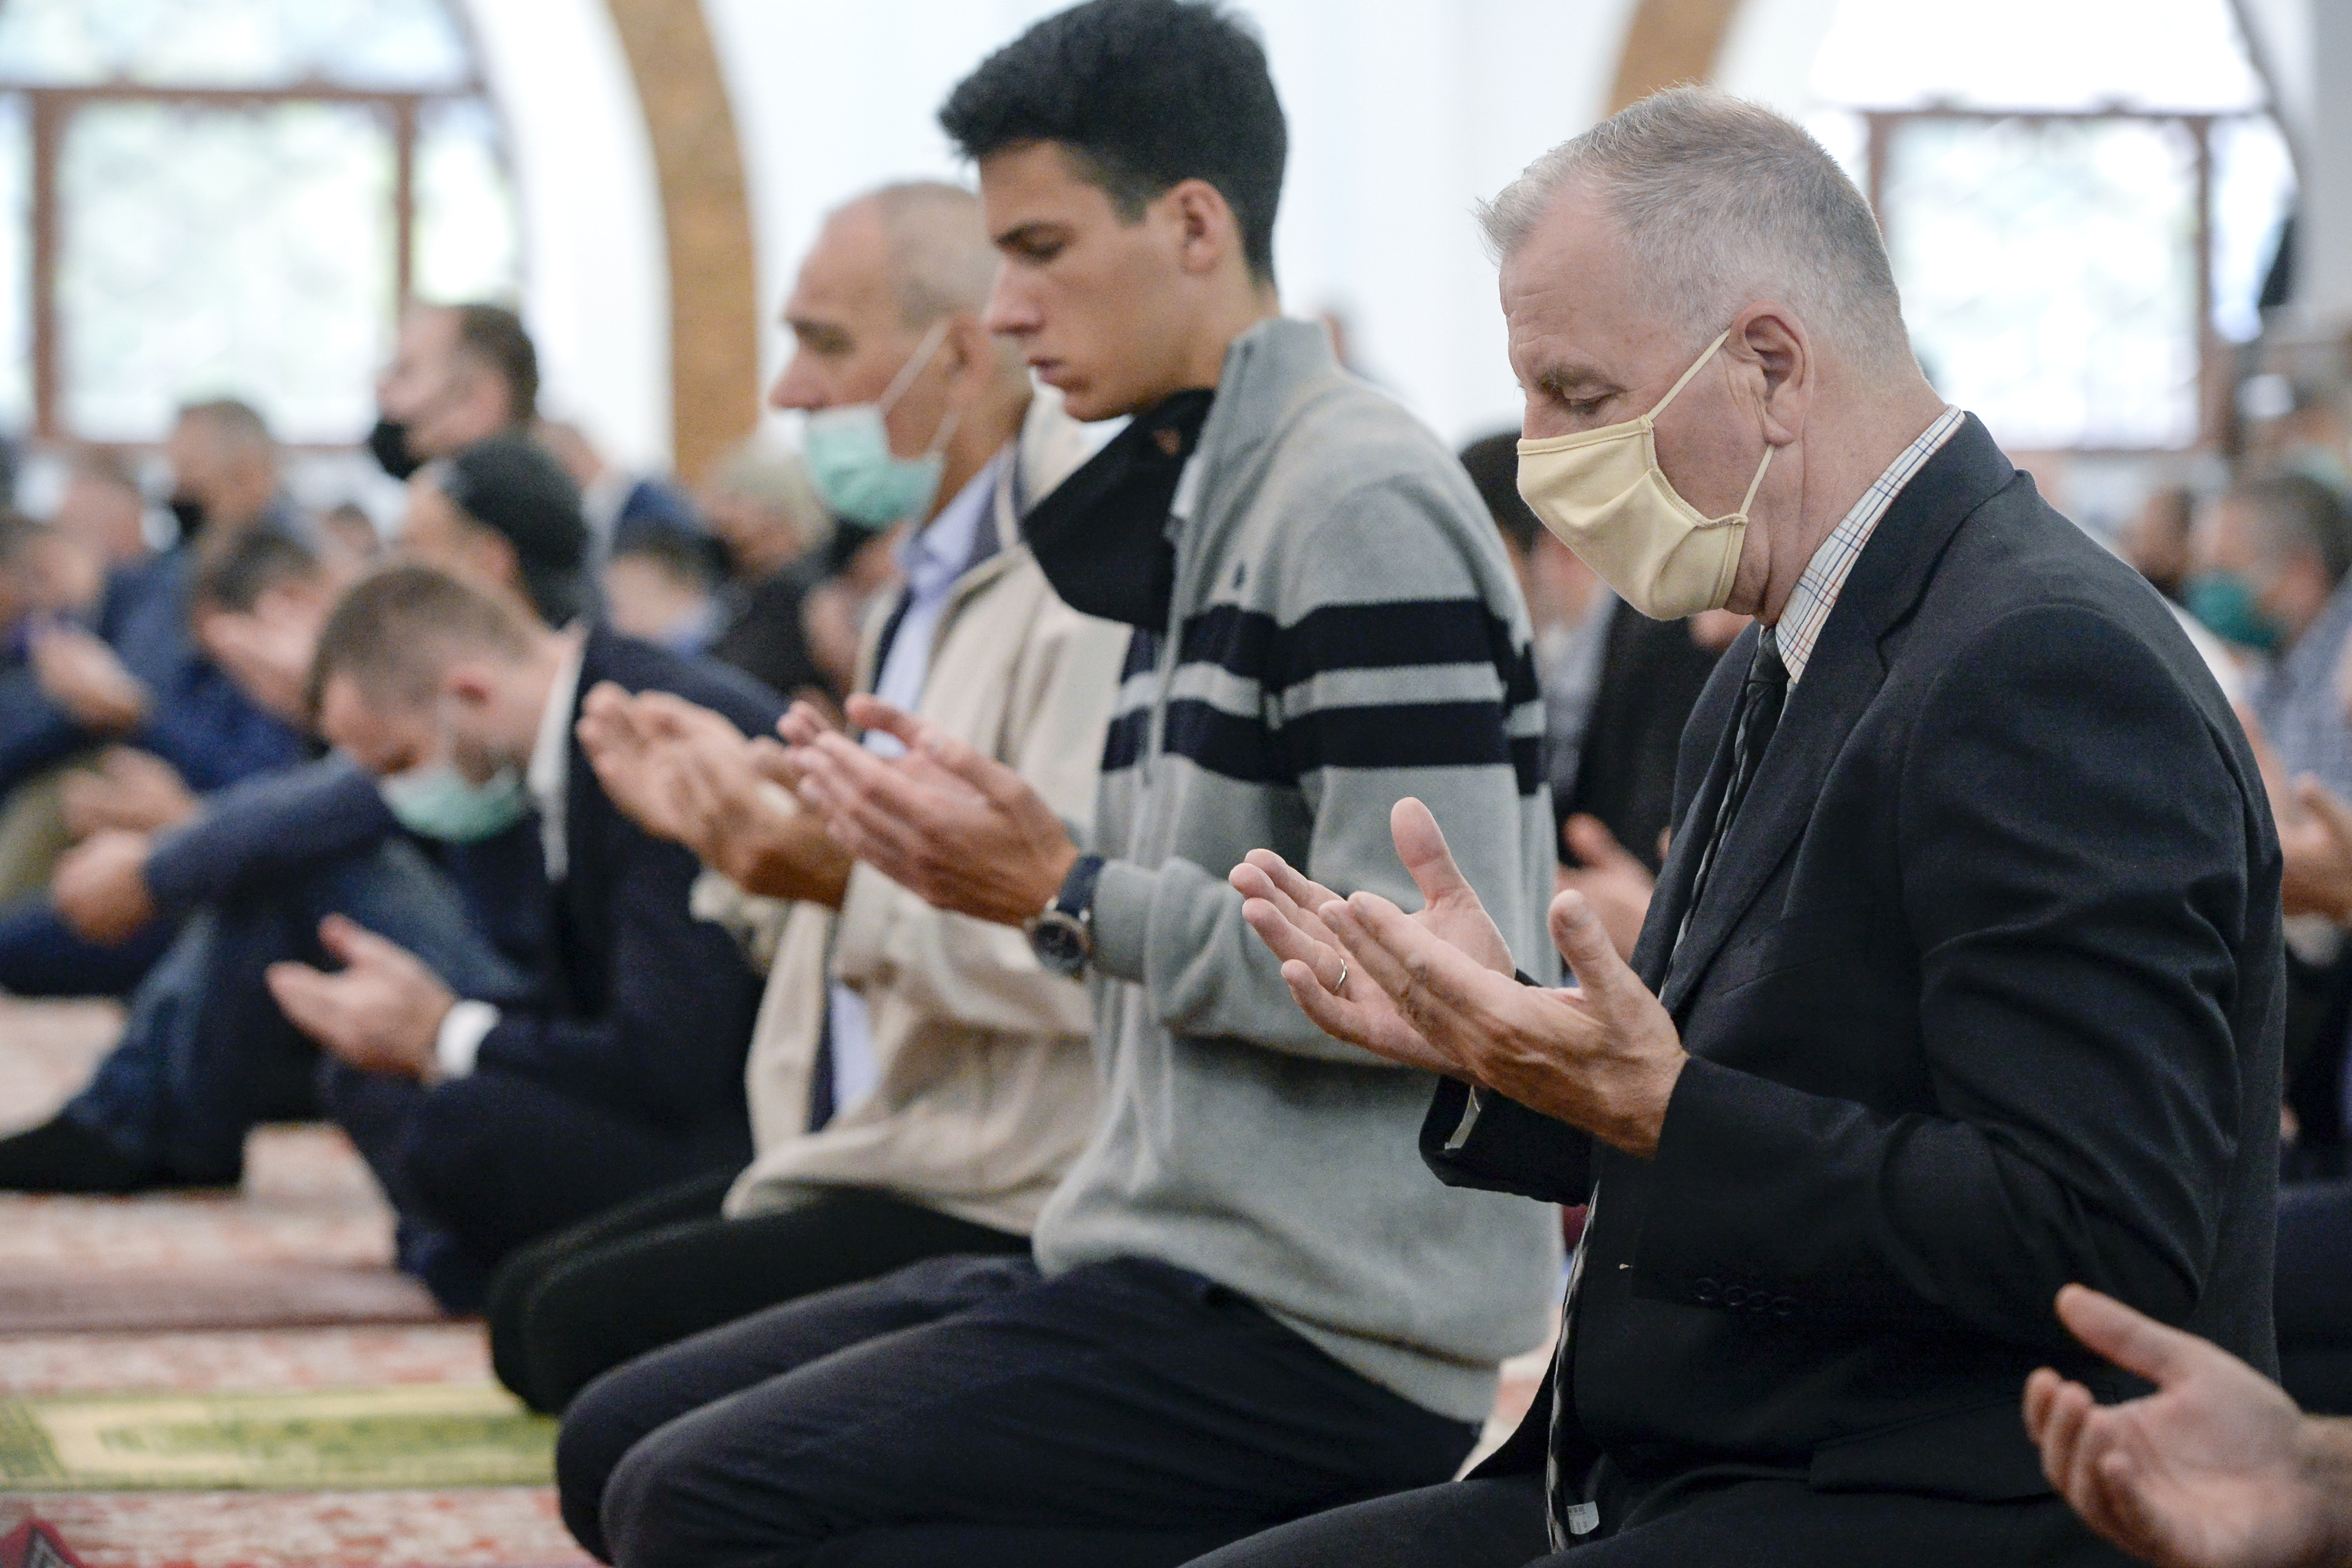 Bosnian muslims, some wearing face masks to protect themselves from the COVID-19 infection, attend Eid al-Fitr prayers in Sarajevo, Bosnia, Sunday, May 24, 2020. Muslims worldwide are marking a muted religious festival of Eid al-Fitr, the end of the fasting month of Ramadan _ a usually joyous three-day celebration that has been significantly toned down due to the new coronavirus outbreak.(AP Photo/Kemal Softic)